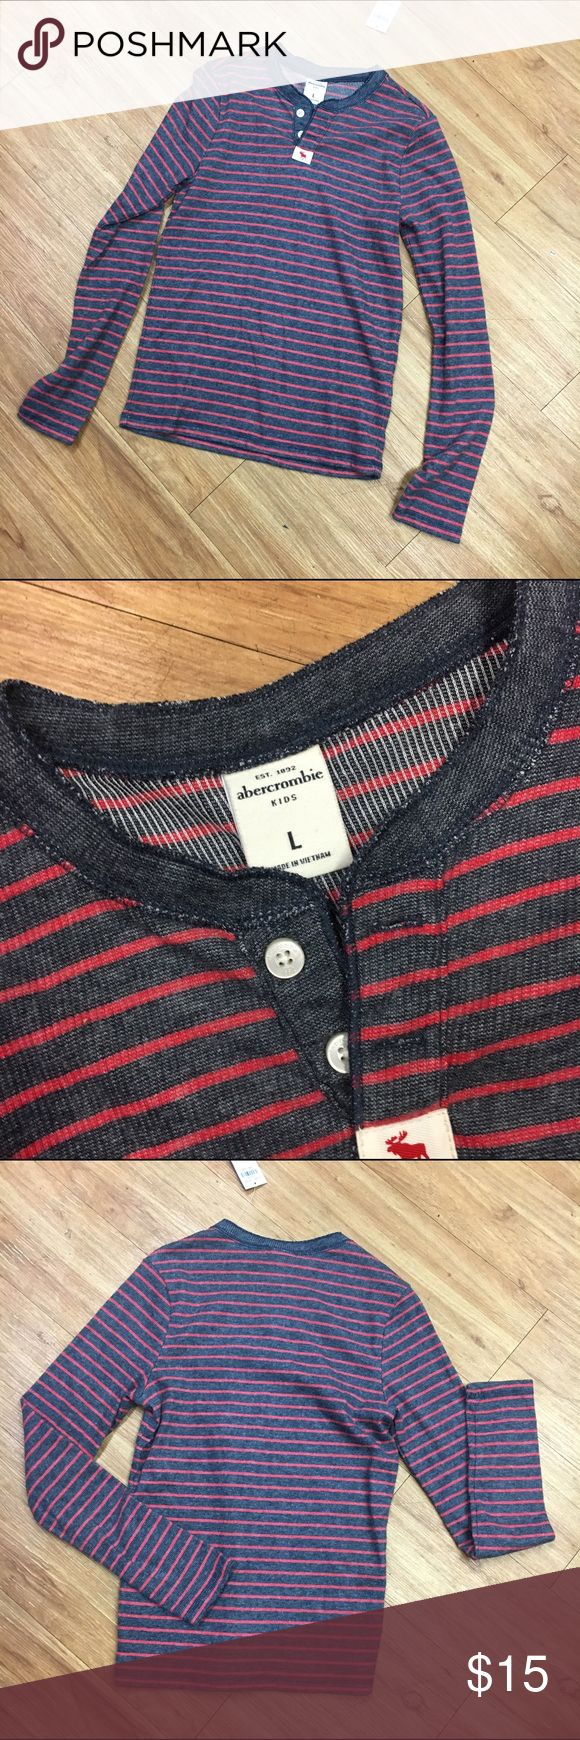 NEW NWT Abercrombie Navy Red Stripe Shirt L Large NEW NWT Abercrombie Navy Red Stripe Shirt L Large  Abercrombie says a large is a 14 but ymmv.  ;-)  New with tags henley style lightweight shirt.  Kind of a thermal-y ribbed knit feel but not heavy.  #new #nwt #stripe #striped #stripes #red #navy #shirt #henley #newneverworn abercrombie kids Shirts & Tops Tees - Long Sleeve